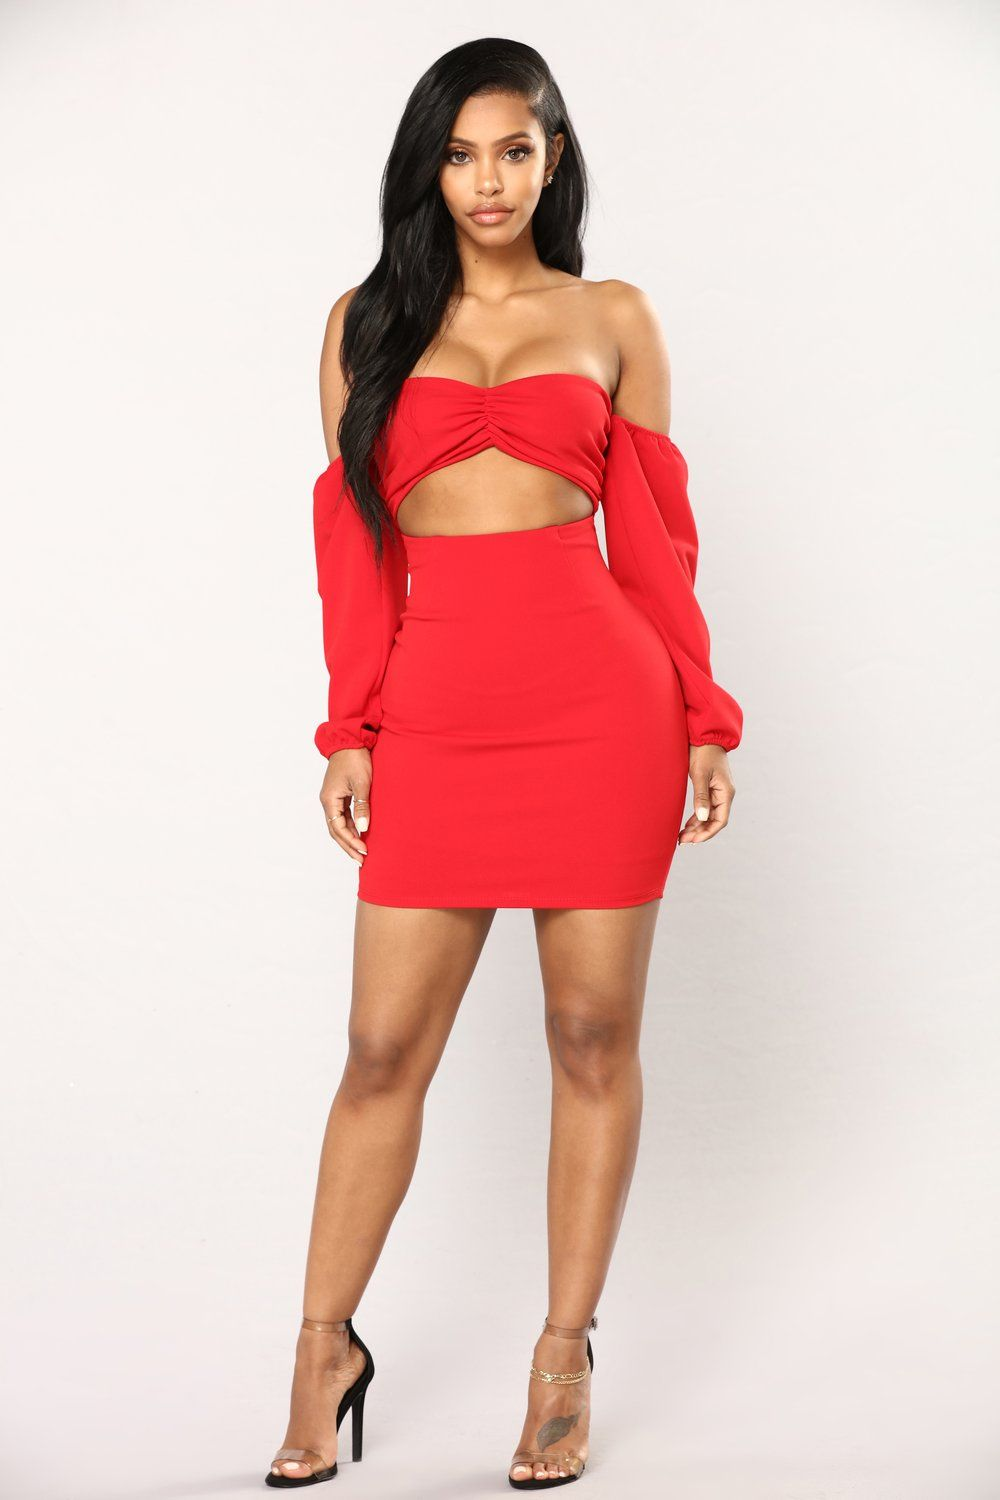 8627bd2abfcb Say My Name Off The Shoulder Dress - Red in 2019 | Fashion Nova ...